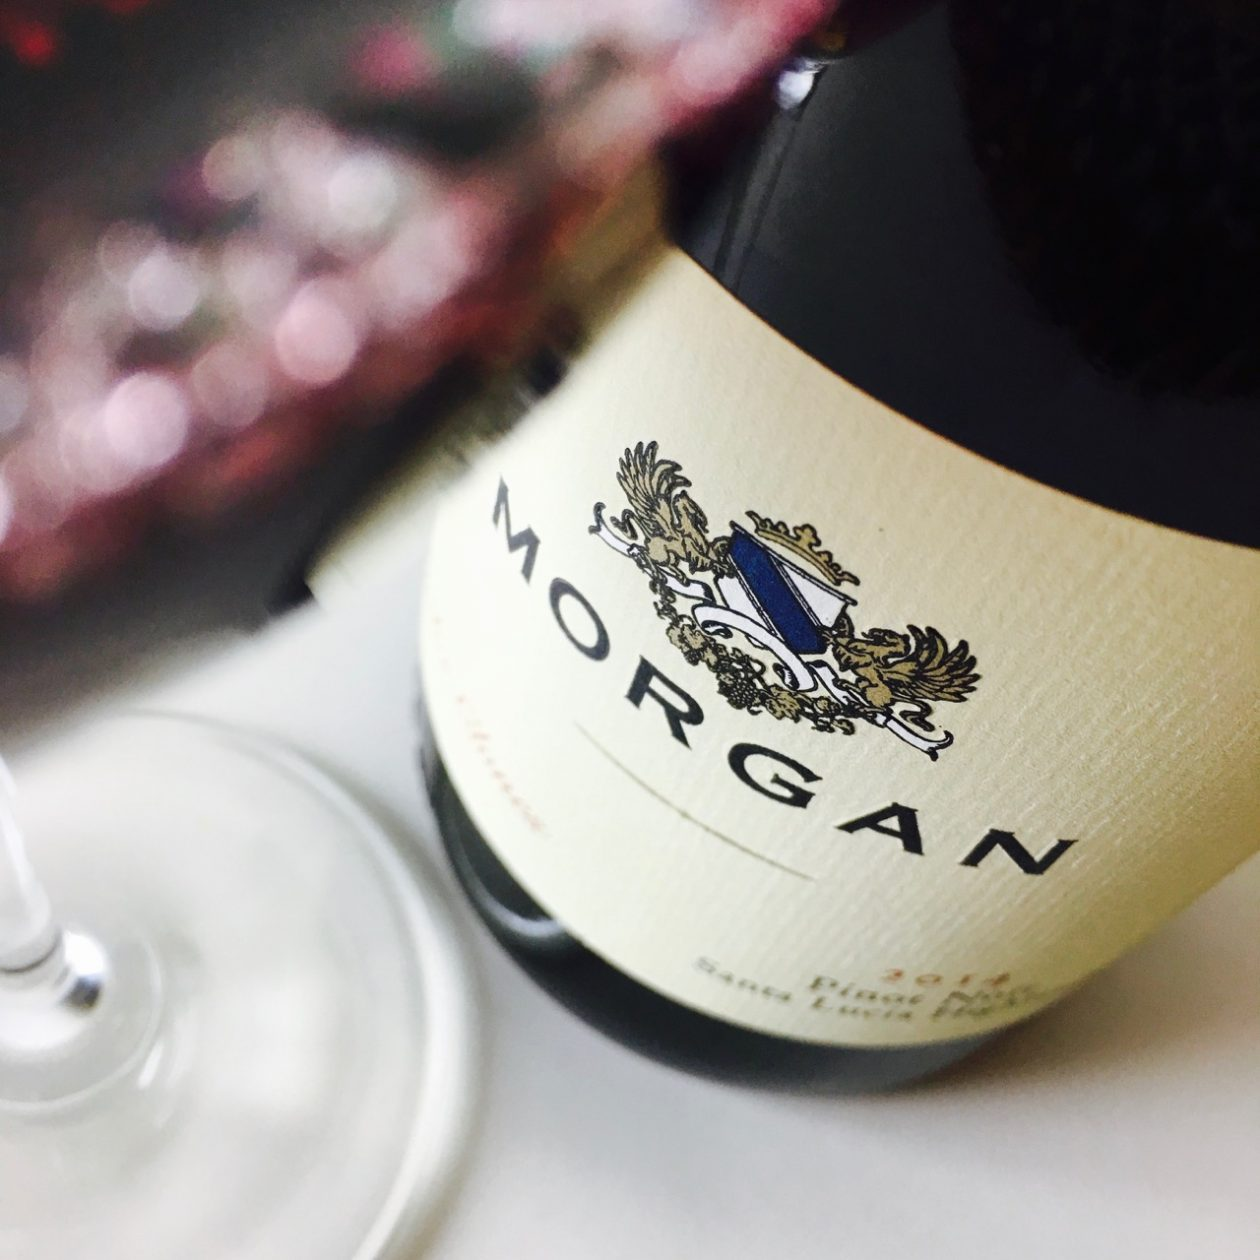 2014 Morgan Winery Pinot Noir Twelve Clones Santa Lucia Highlands